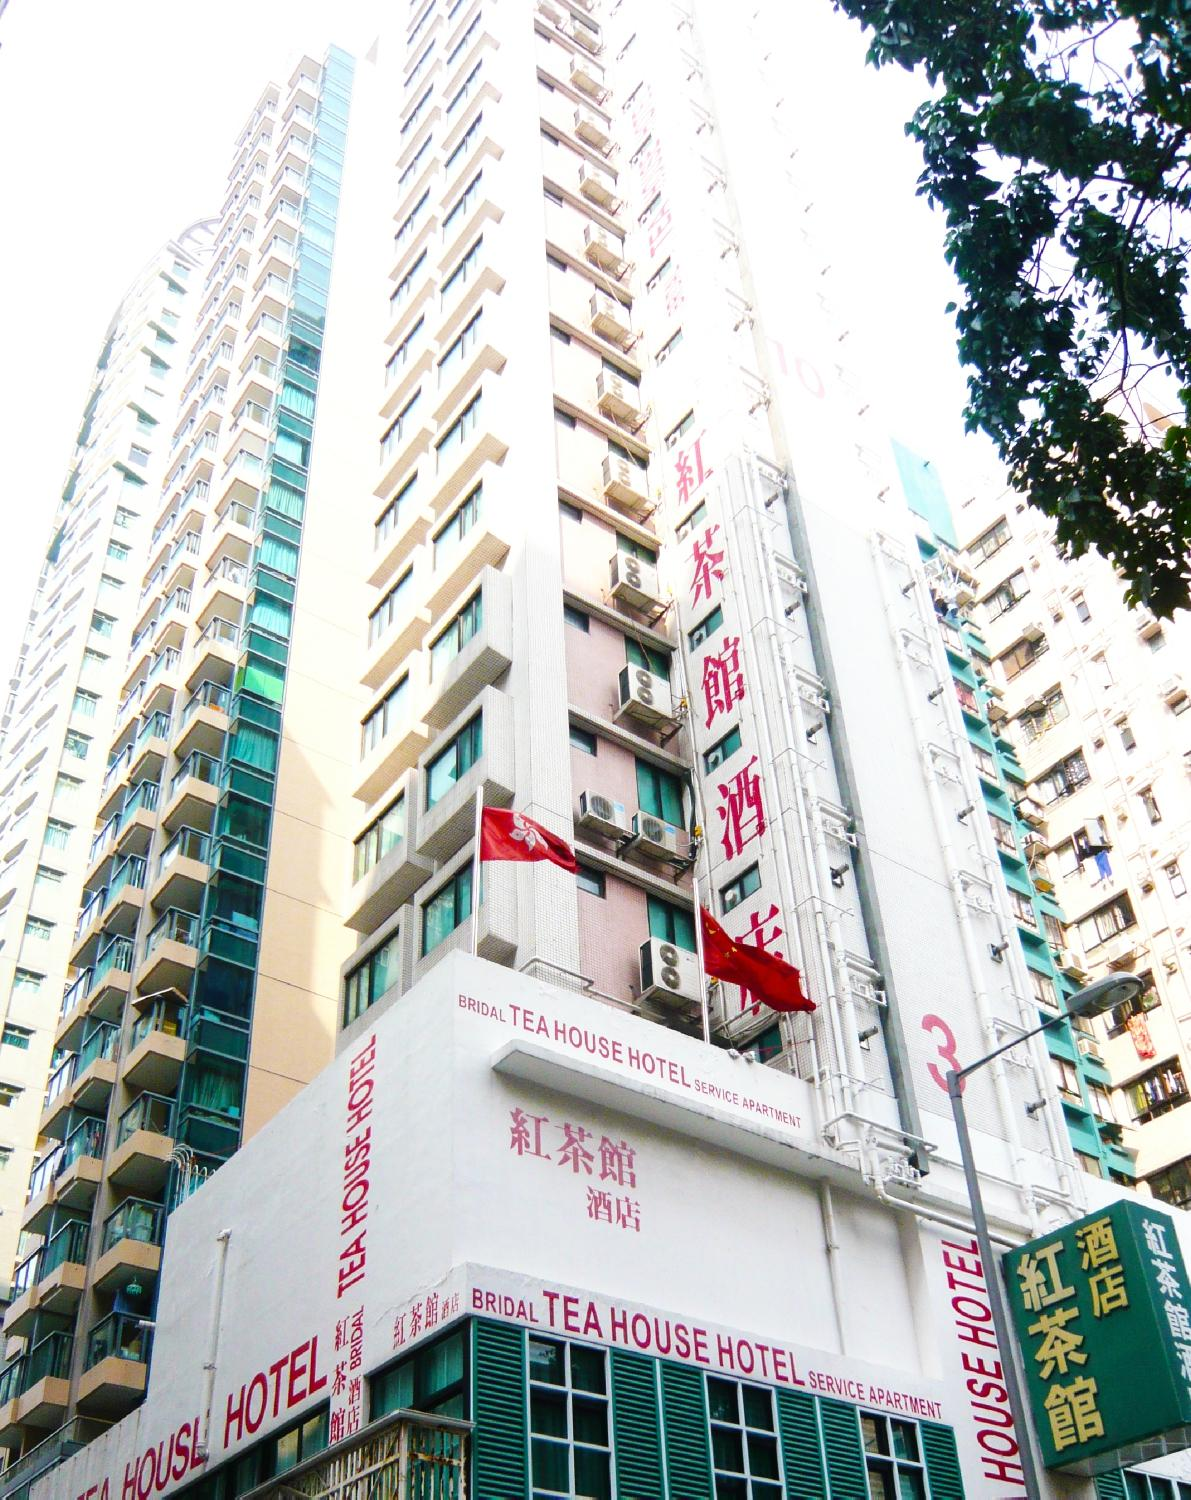 Bridal Tea House Hotel Hung Hom - Winslow Street